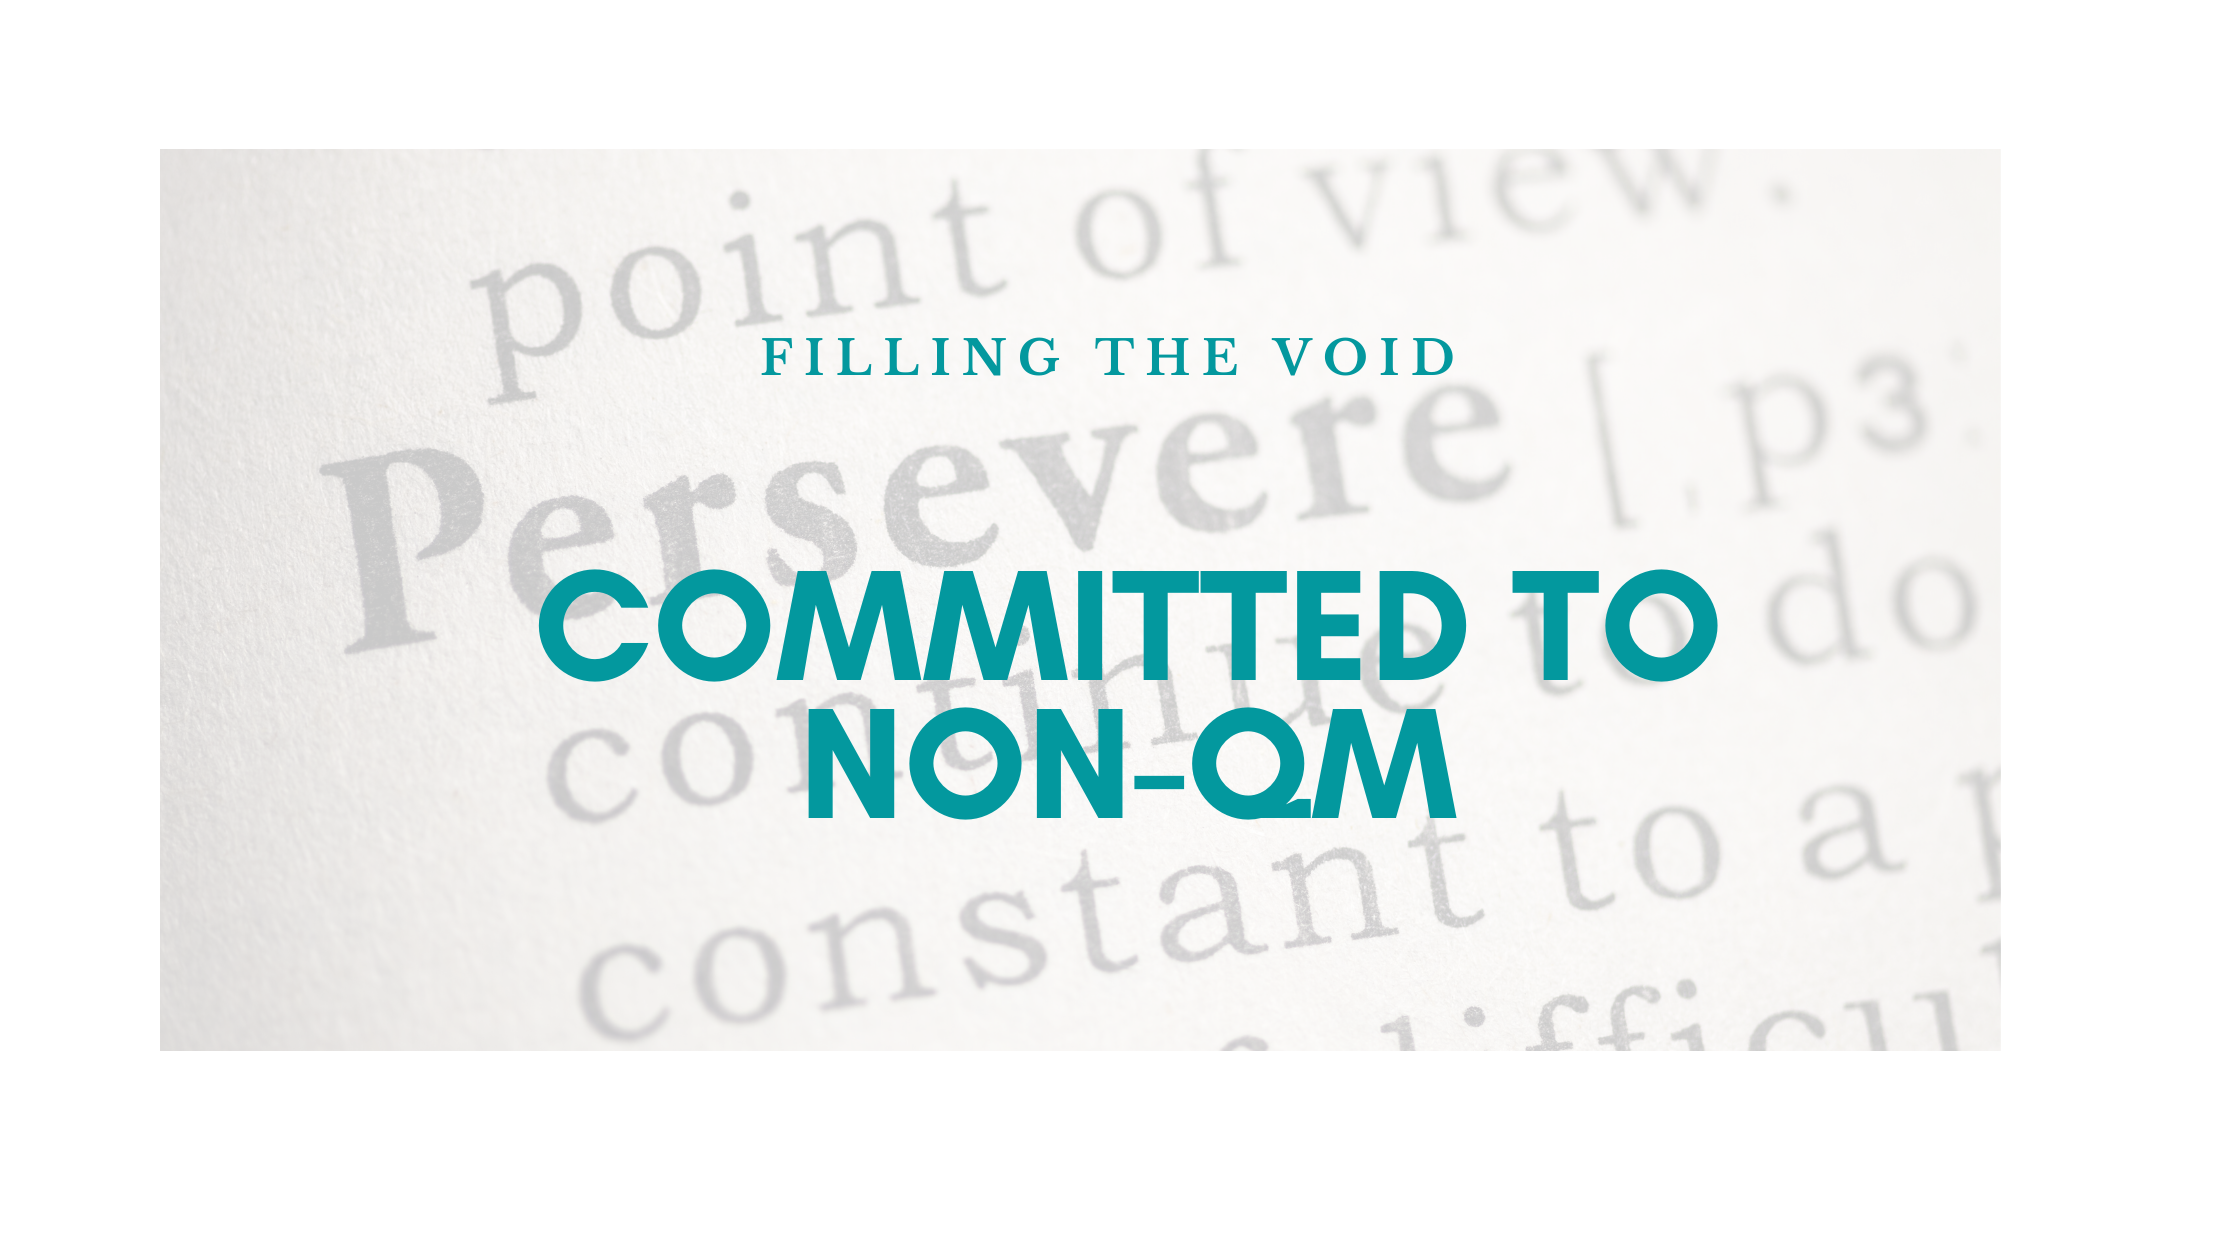 Committed to Non-QM